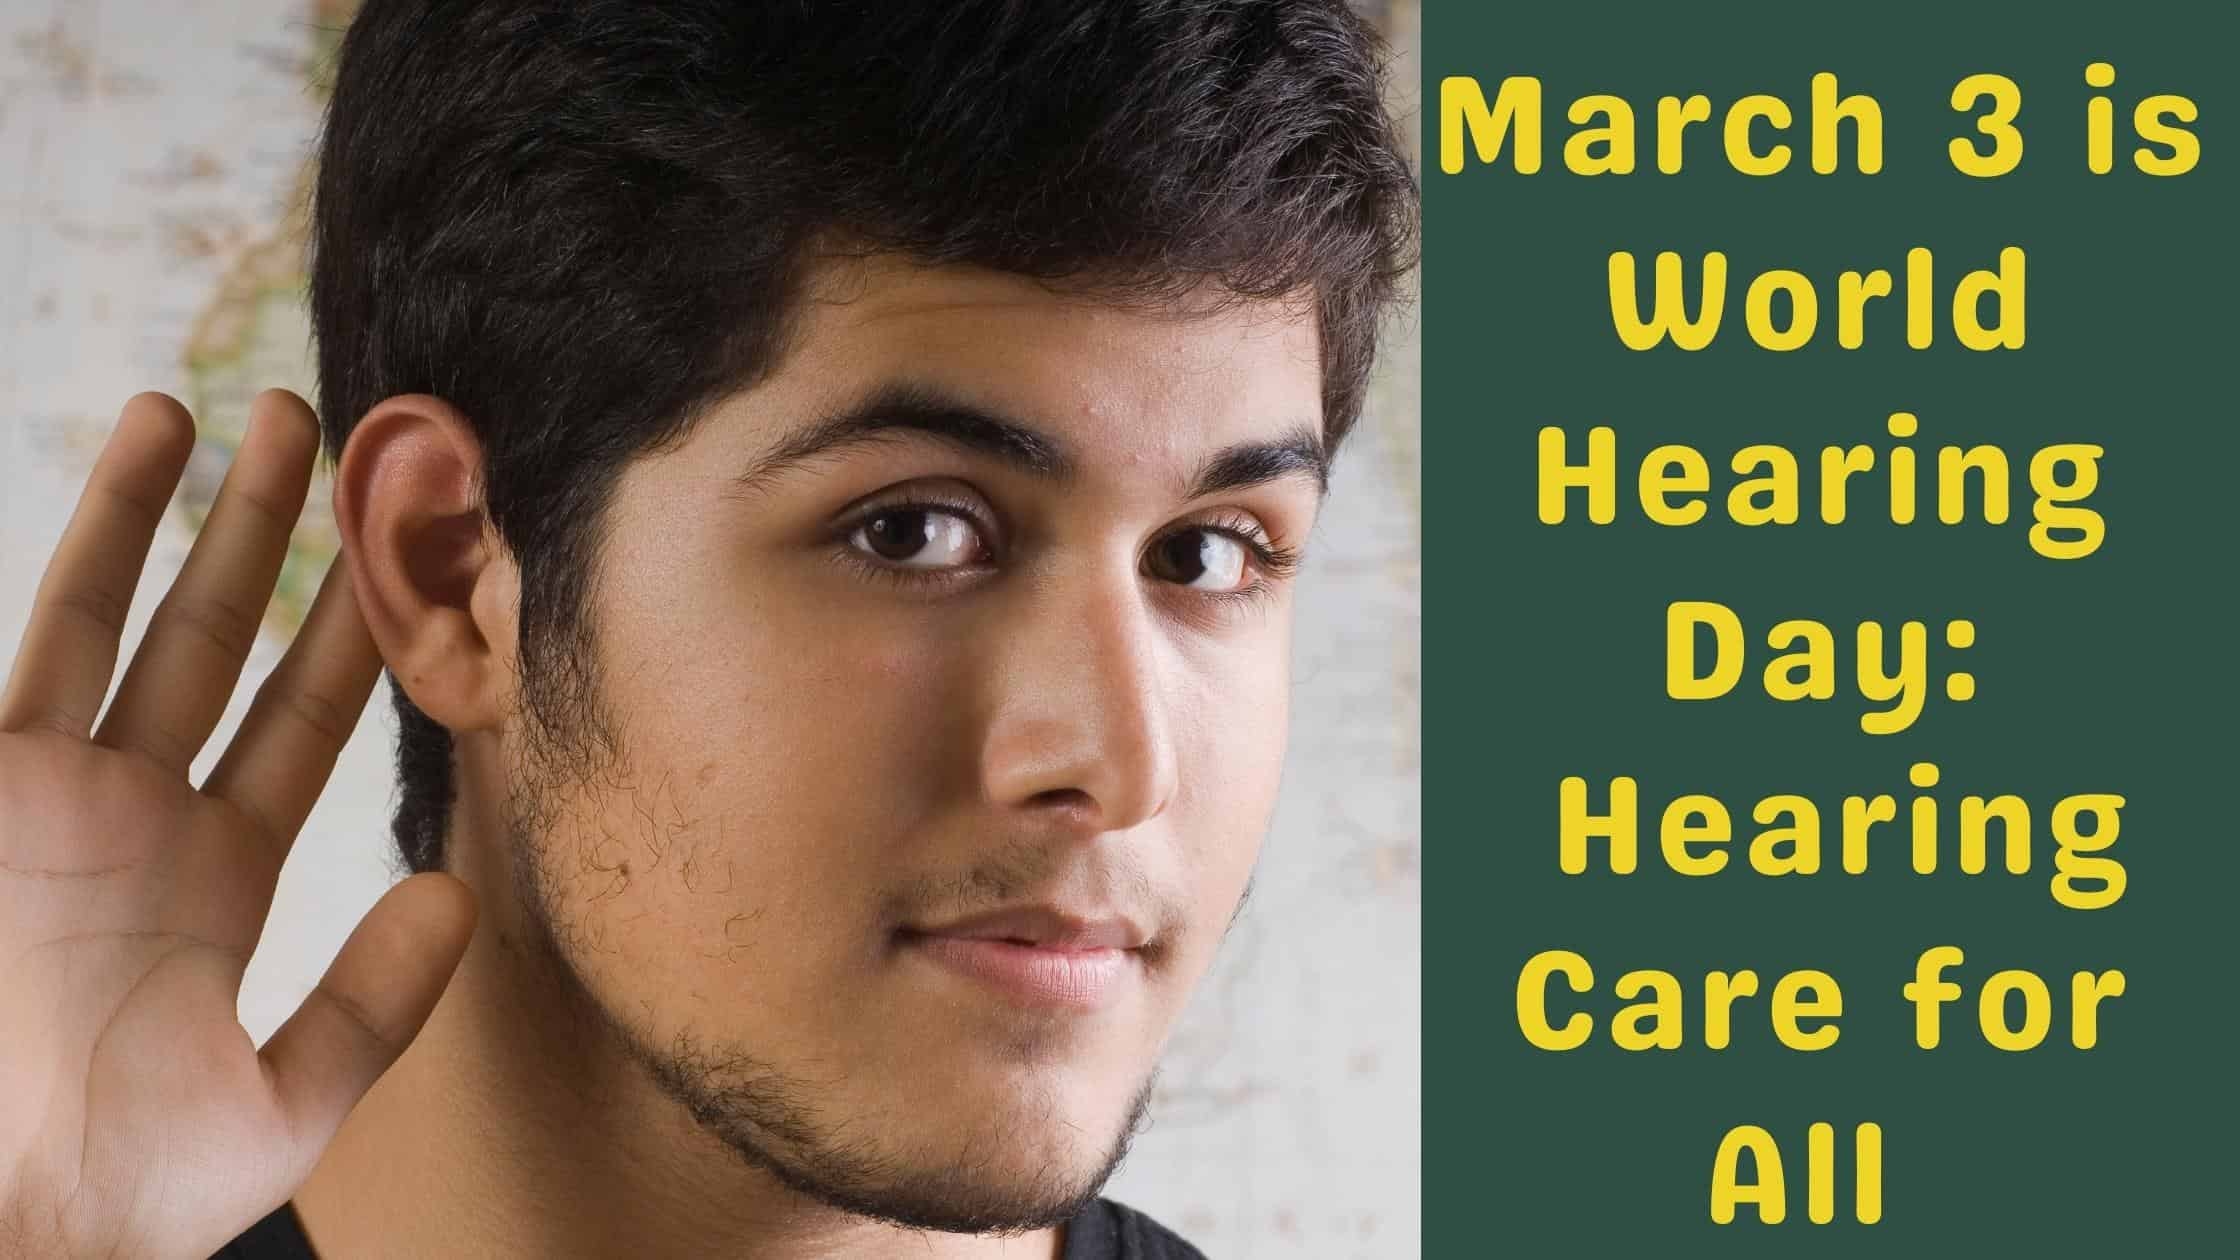 March 3 is World Hearing Day Hearing Care for All(14)